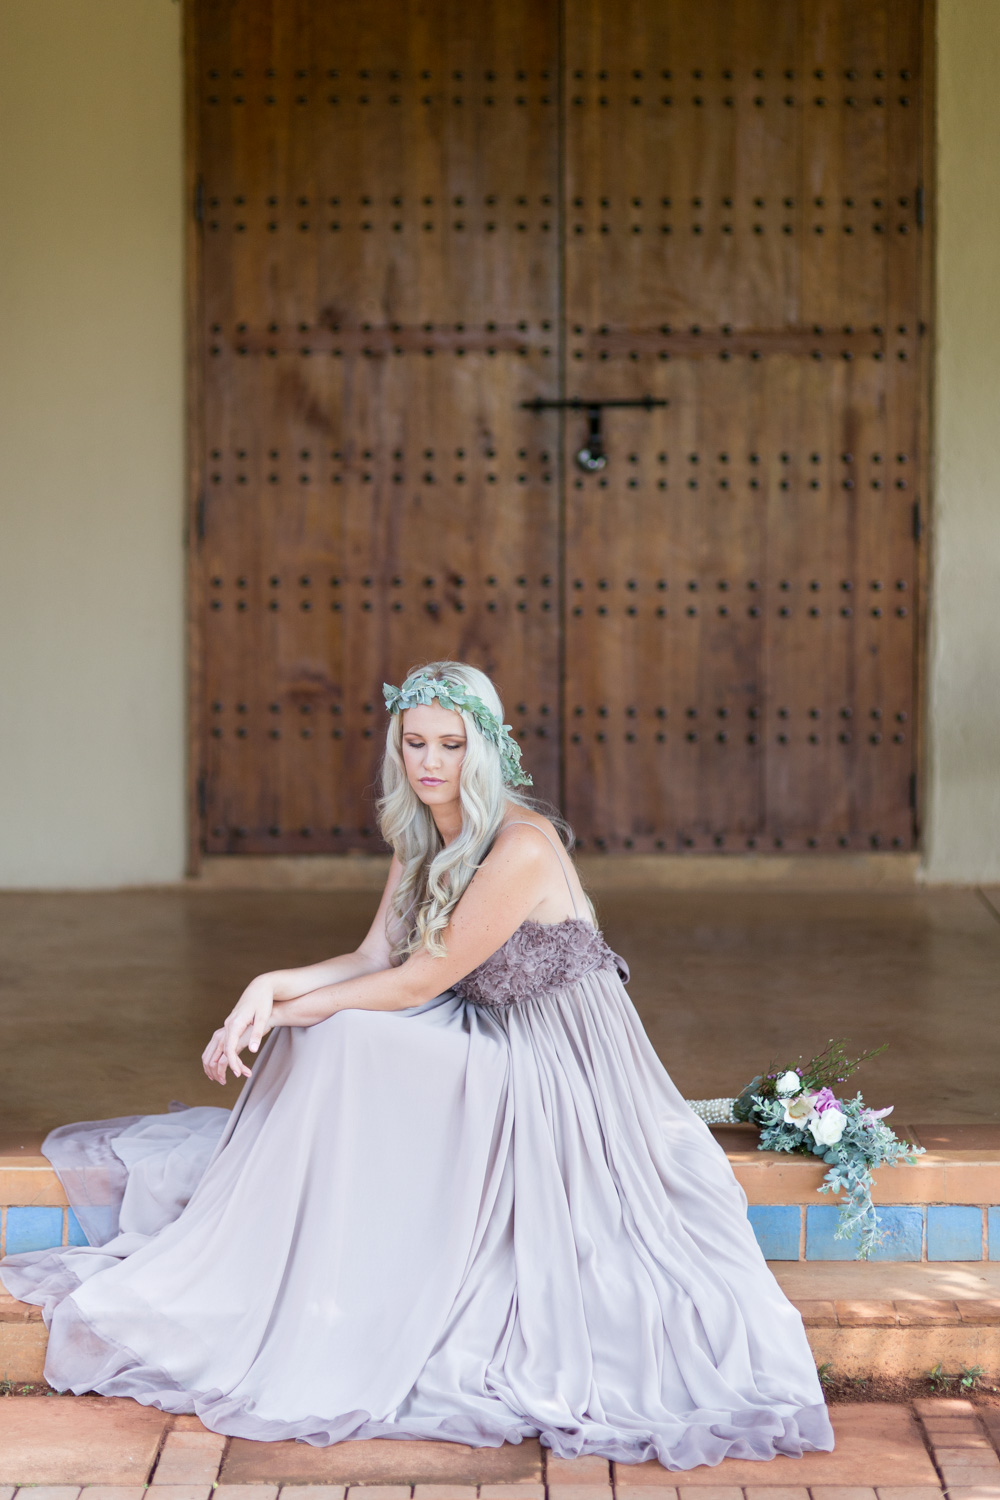 Shokran pretoria wedding venue shoot018.jpg